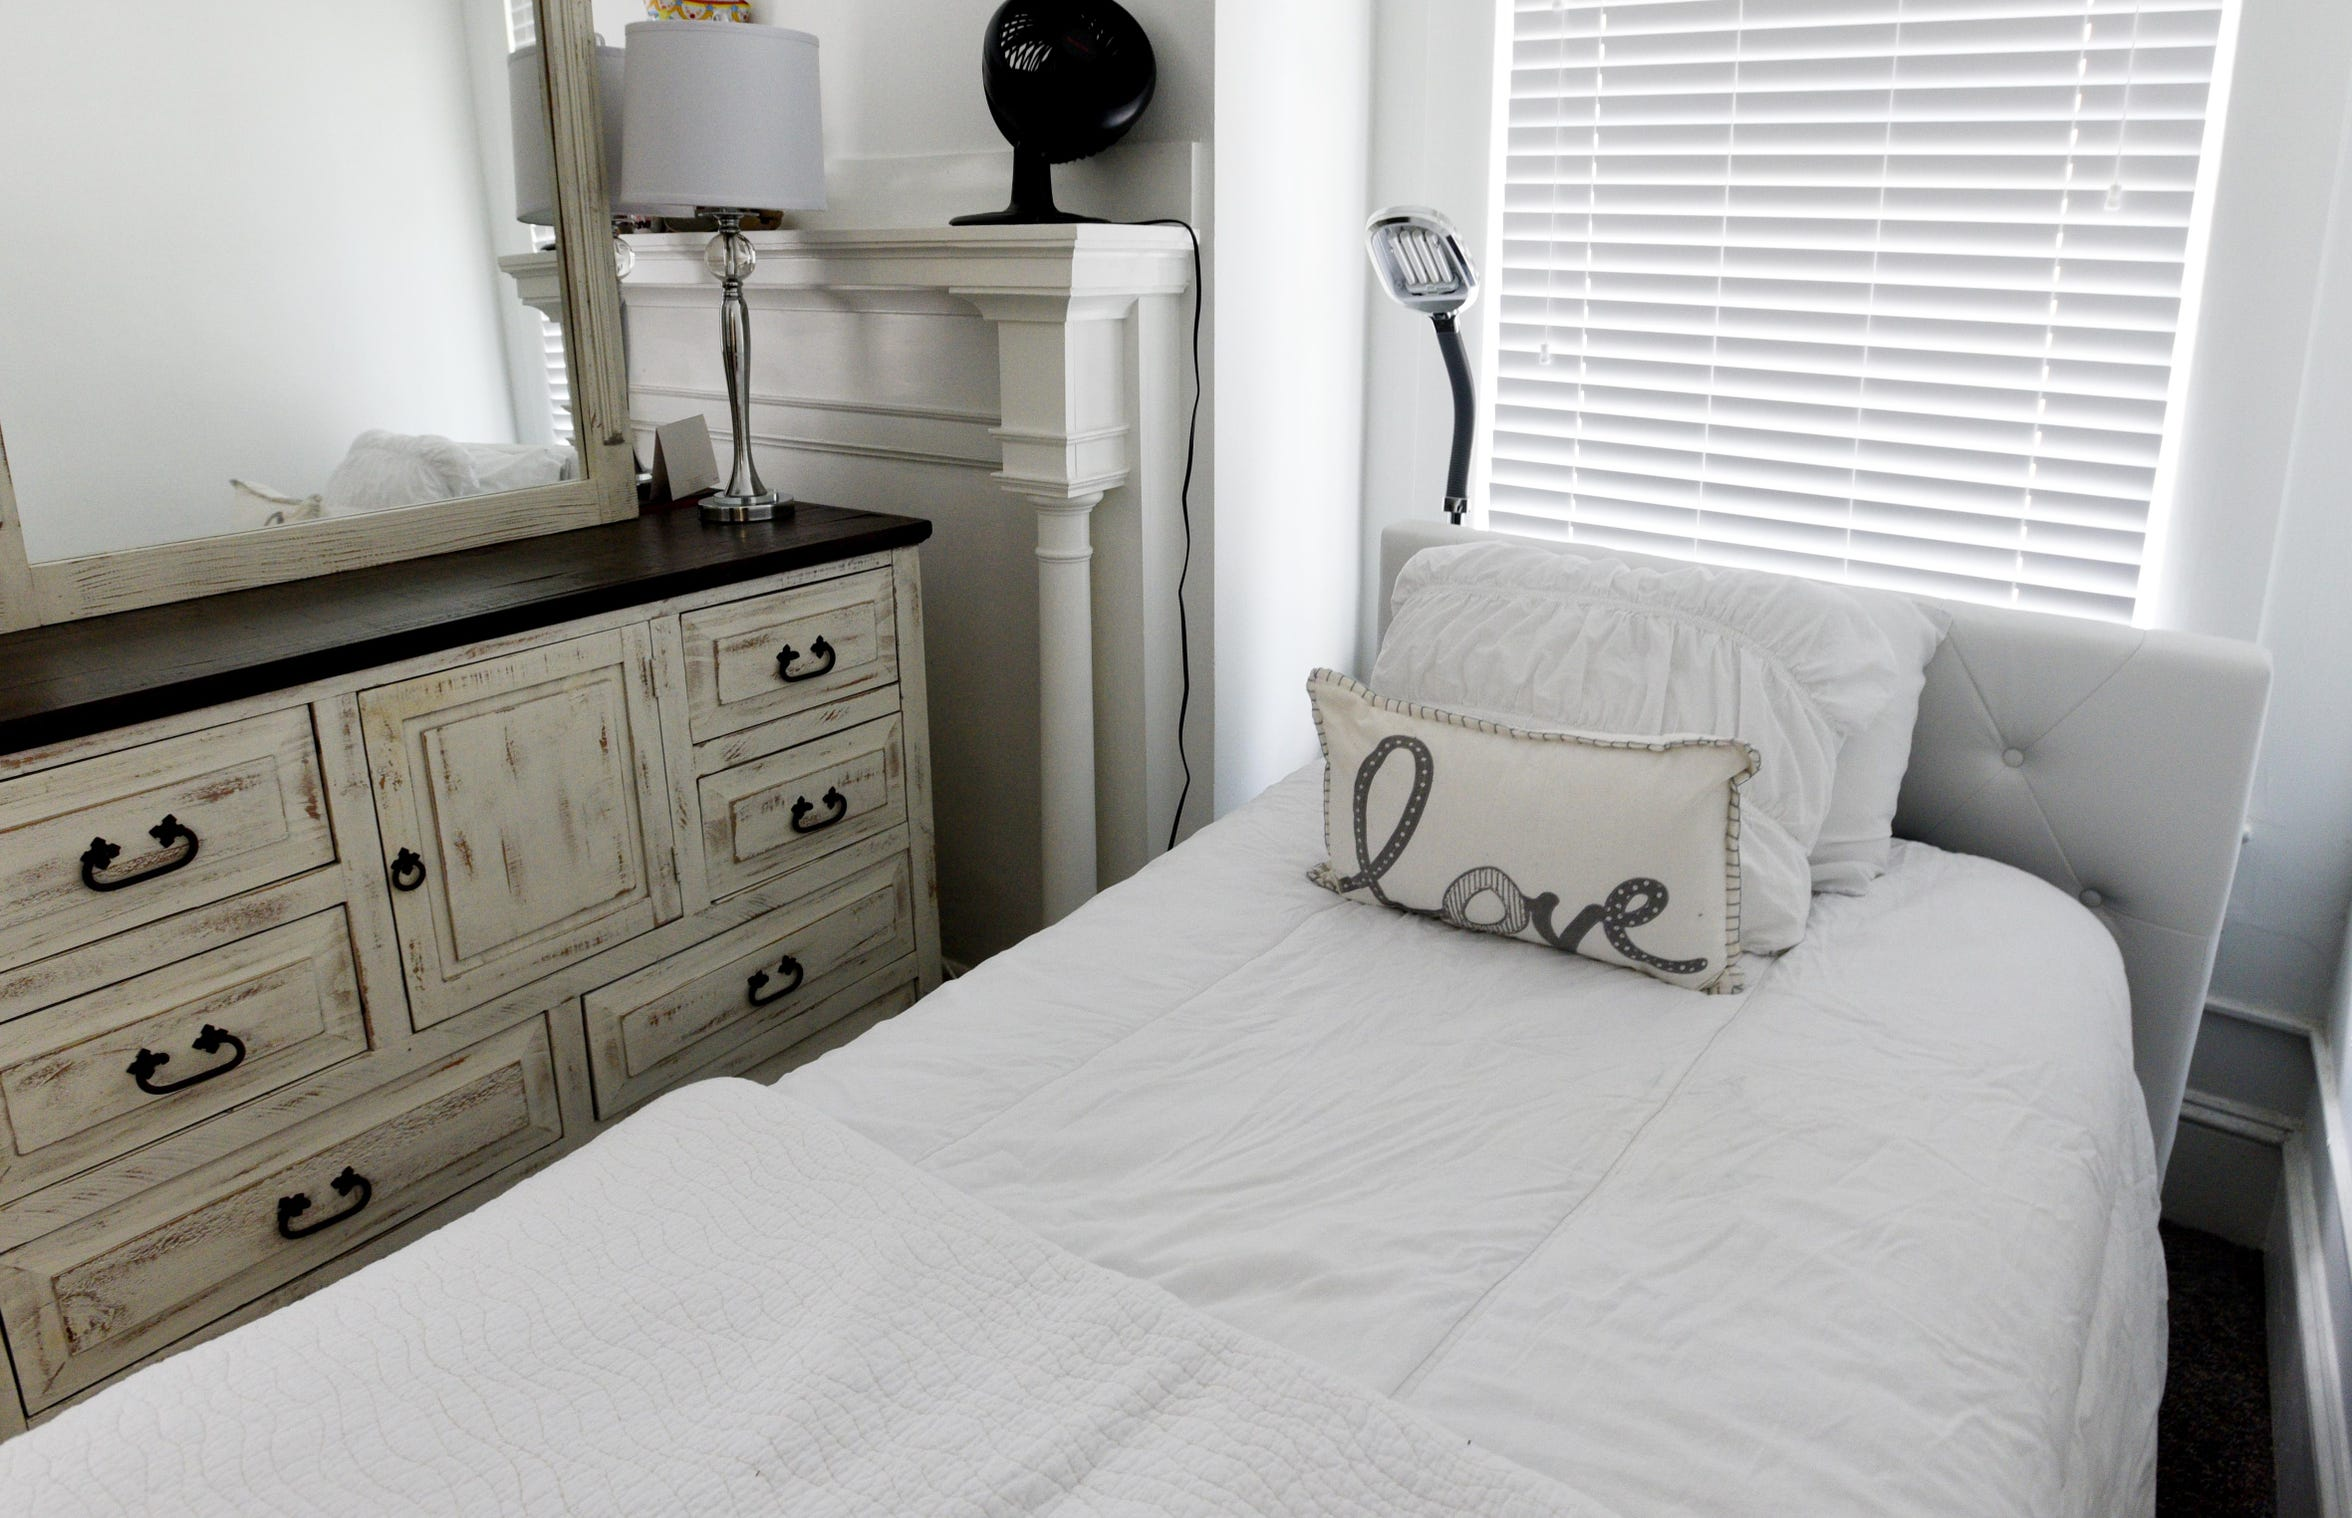 A bed at the Oakwood Home for Women.